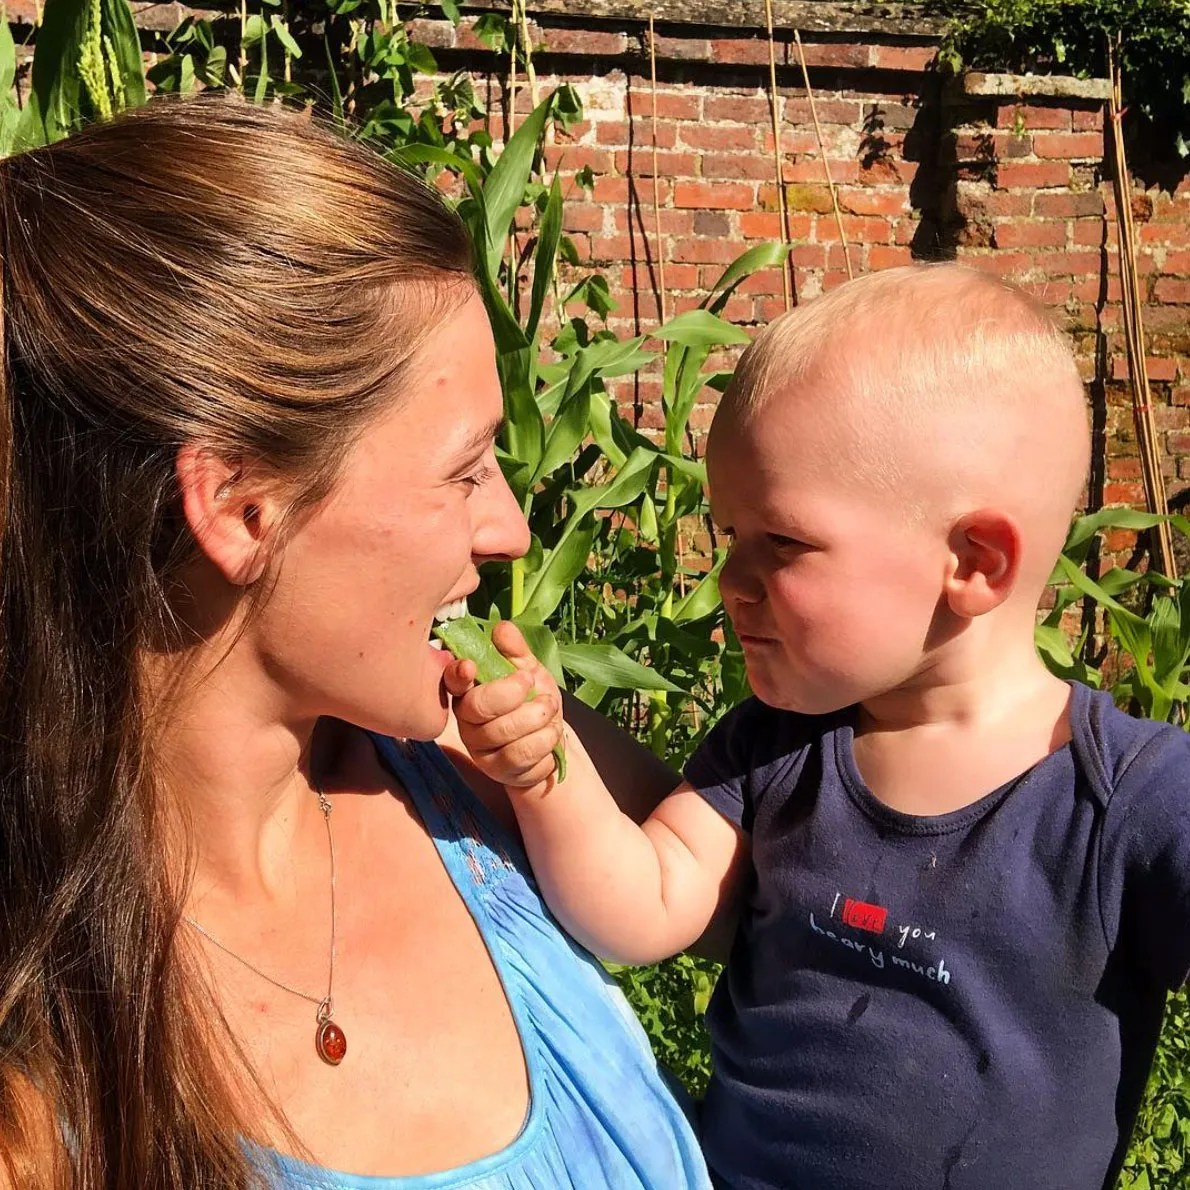 Adventurer Laura Bingham with son Ranulph eating homegrown beans from their vegetable patch at their home in Hallaton, Leicestershire